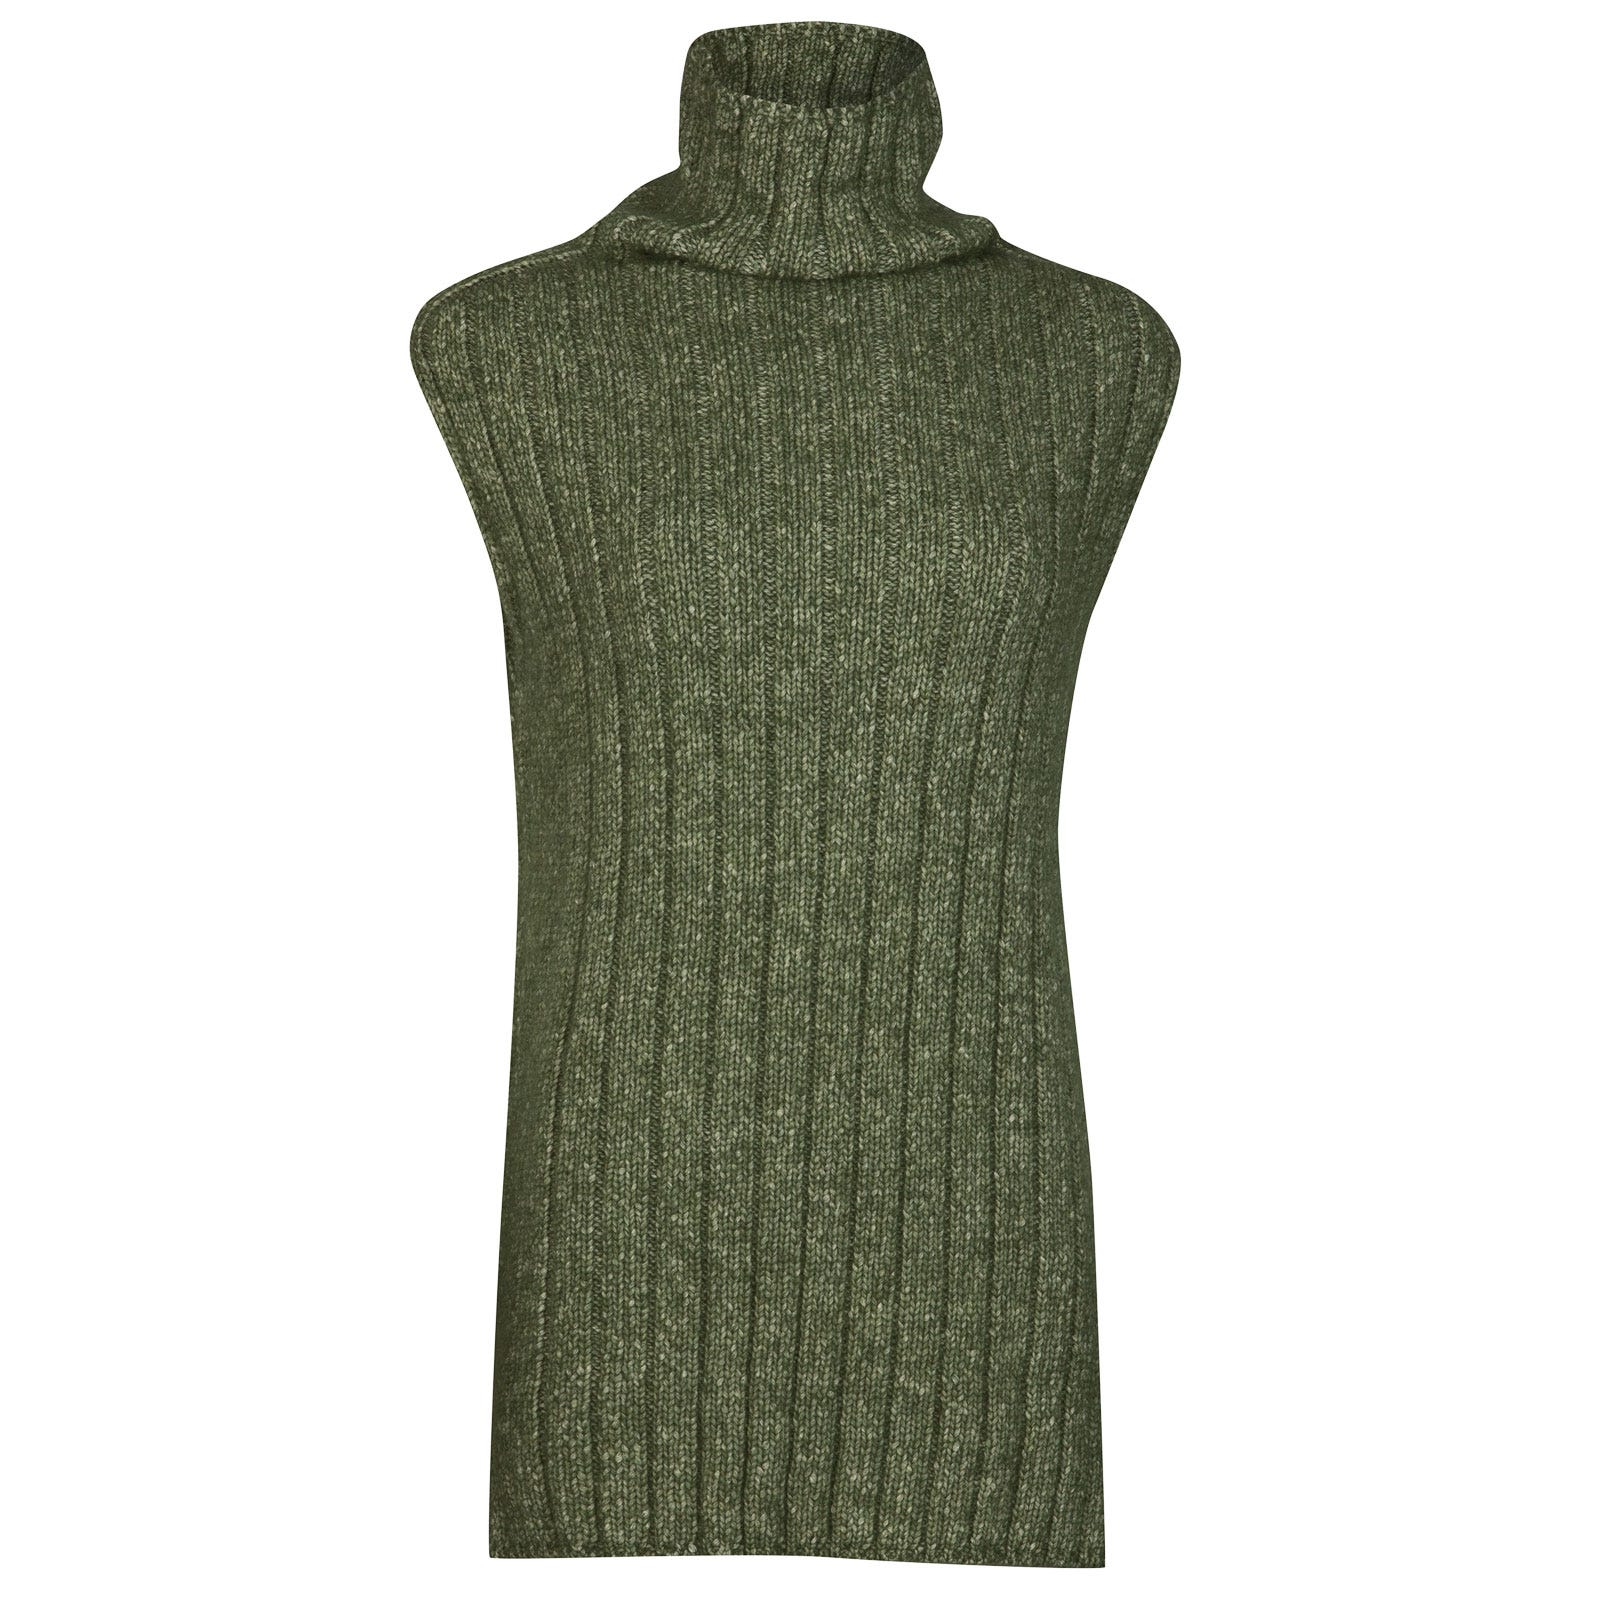 John Smedley conwy Alpaca, Wool & Cotton Sweater in Kielder Green-S